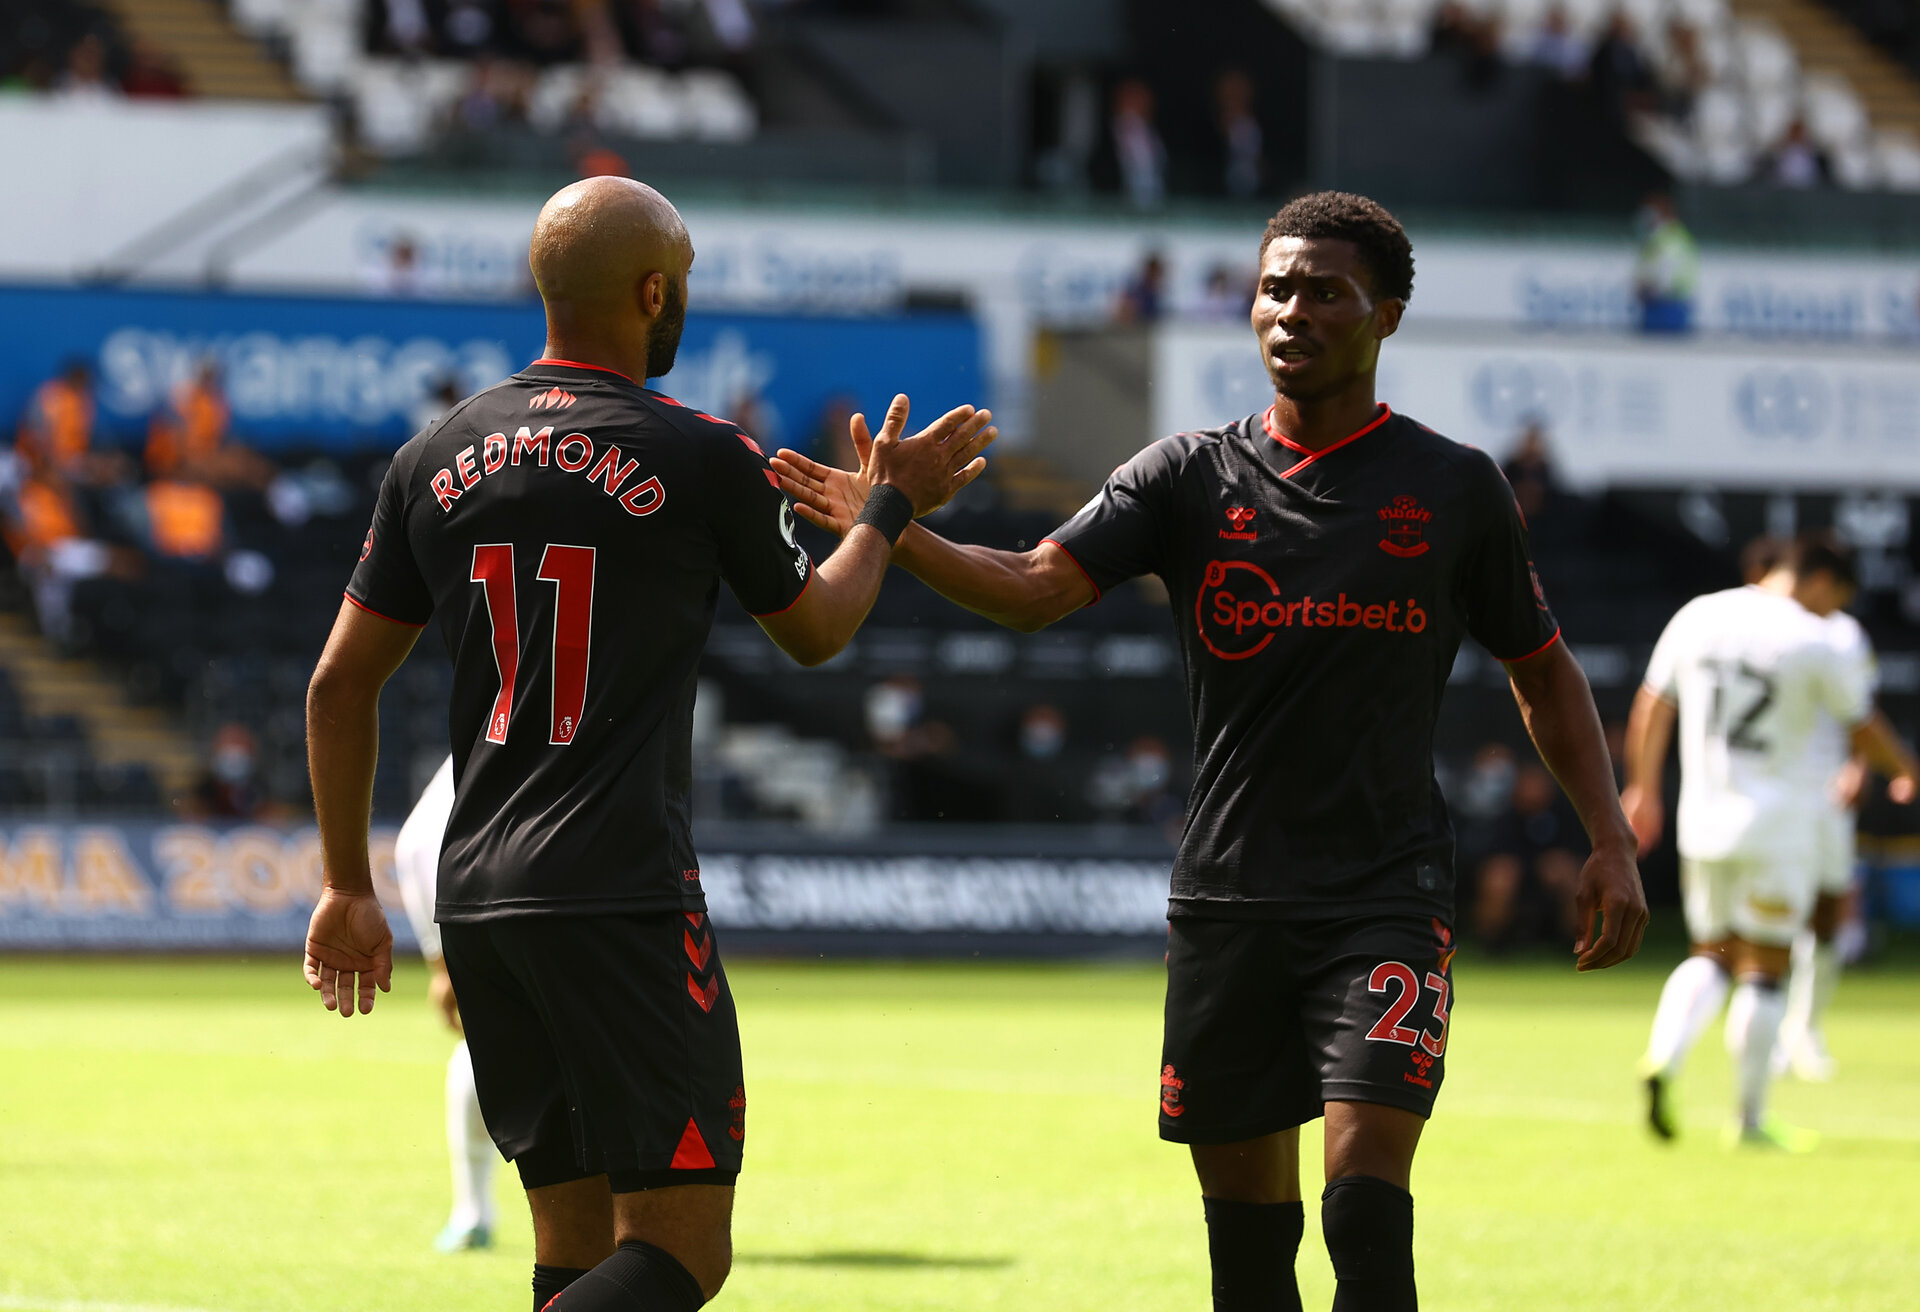 SWANSEA, WALES - JULY 31: Nathan Redmond(L) and Nathan Tella of Southampton during the pre-season friendly match between Swansea City and Southampton FC, at The Liberty Stadium on July 31, 2021 in Swansea, Wales. (Photo by Matt Watson/Southampton FC via Getty Images)